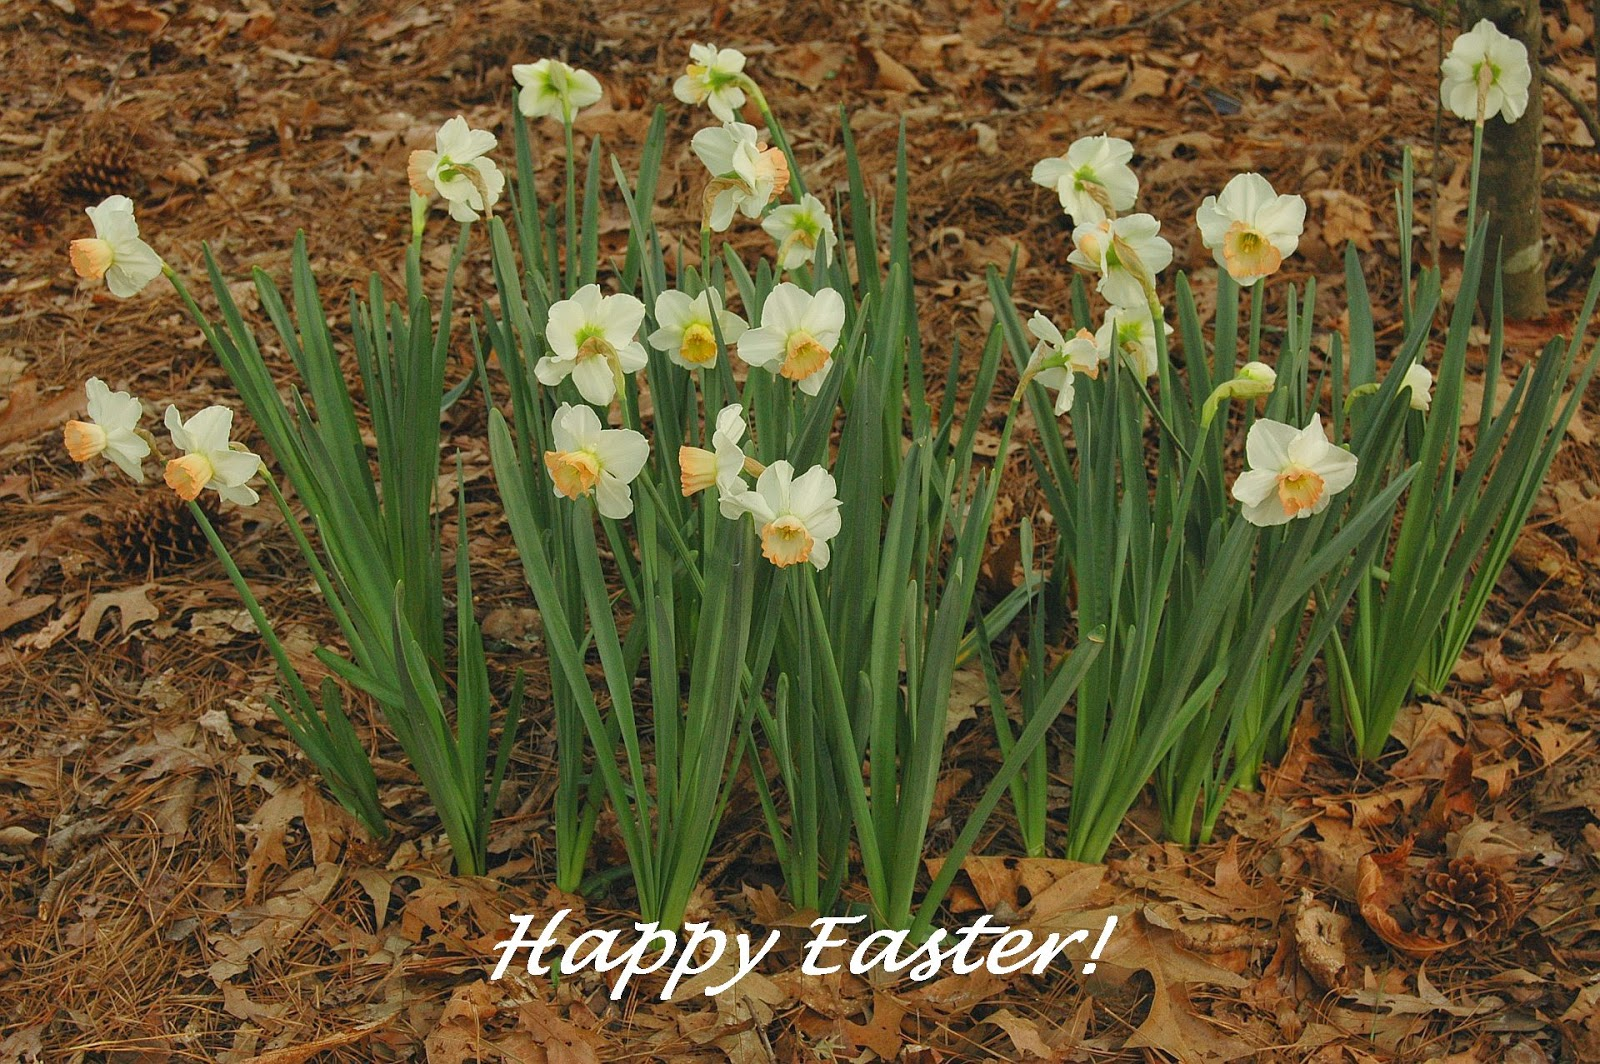 Happy Easter Daffodils